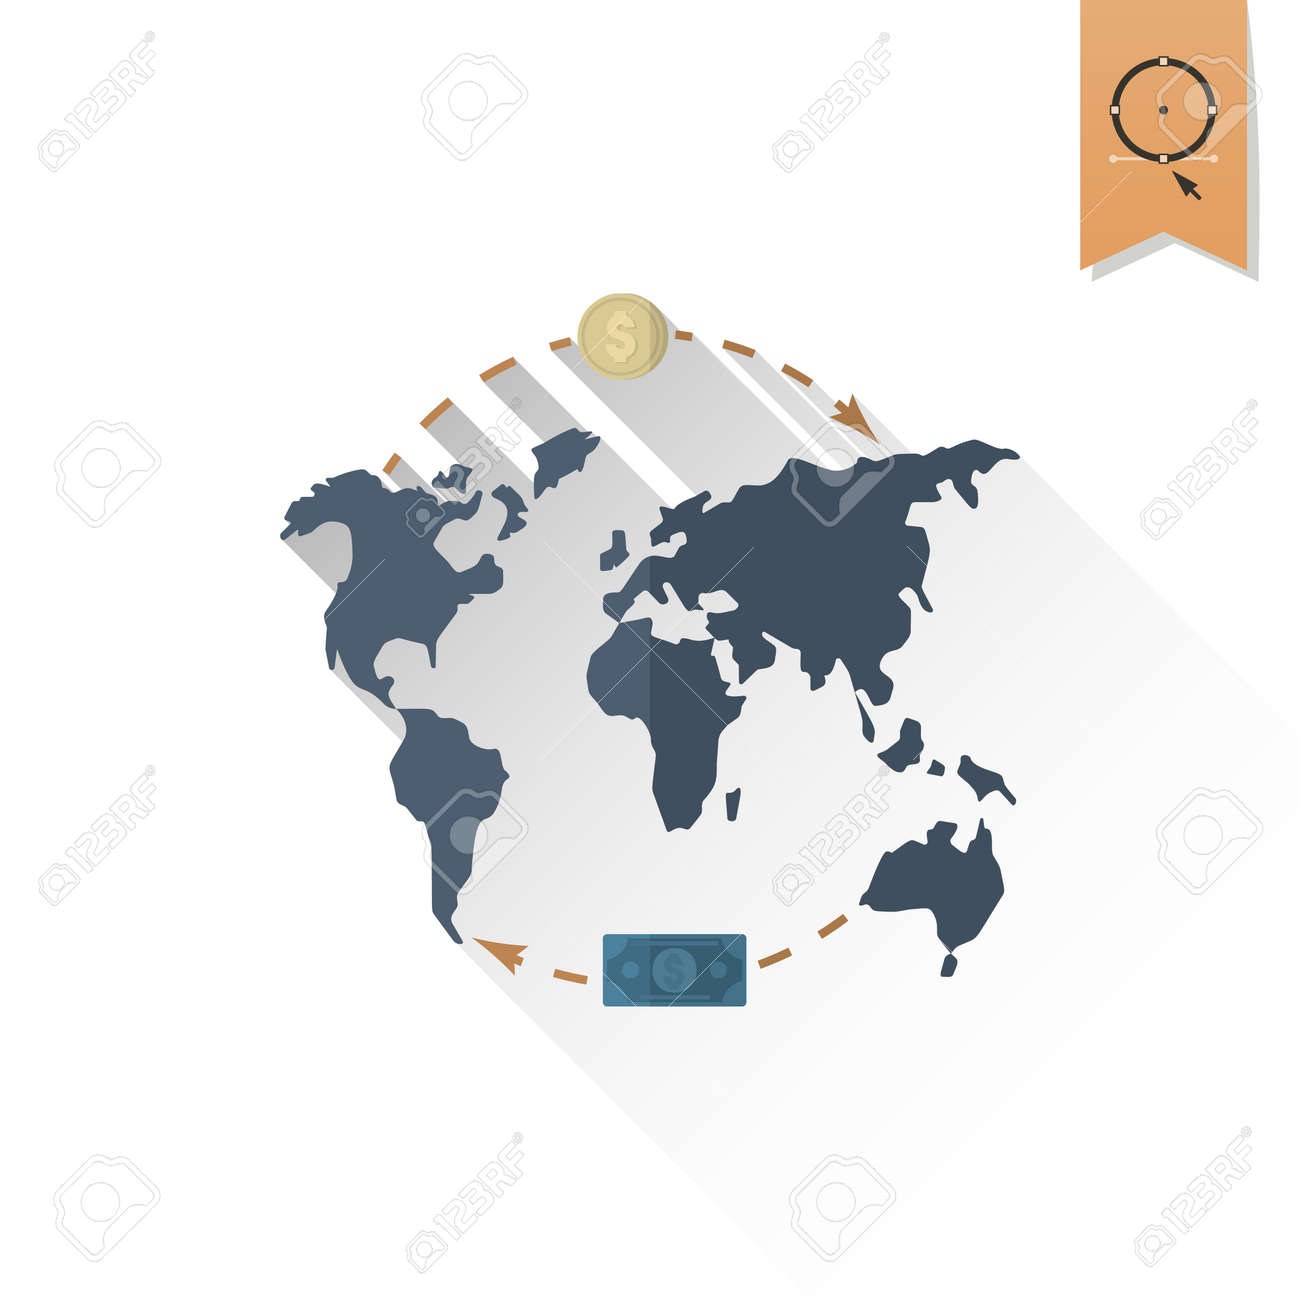 World map and money business and finance single flat icon stock stock photo world map and money business and finance single flat icon simple and minimalistic style gumiabroncs Images